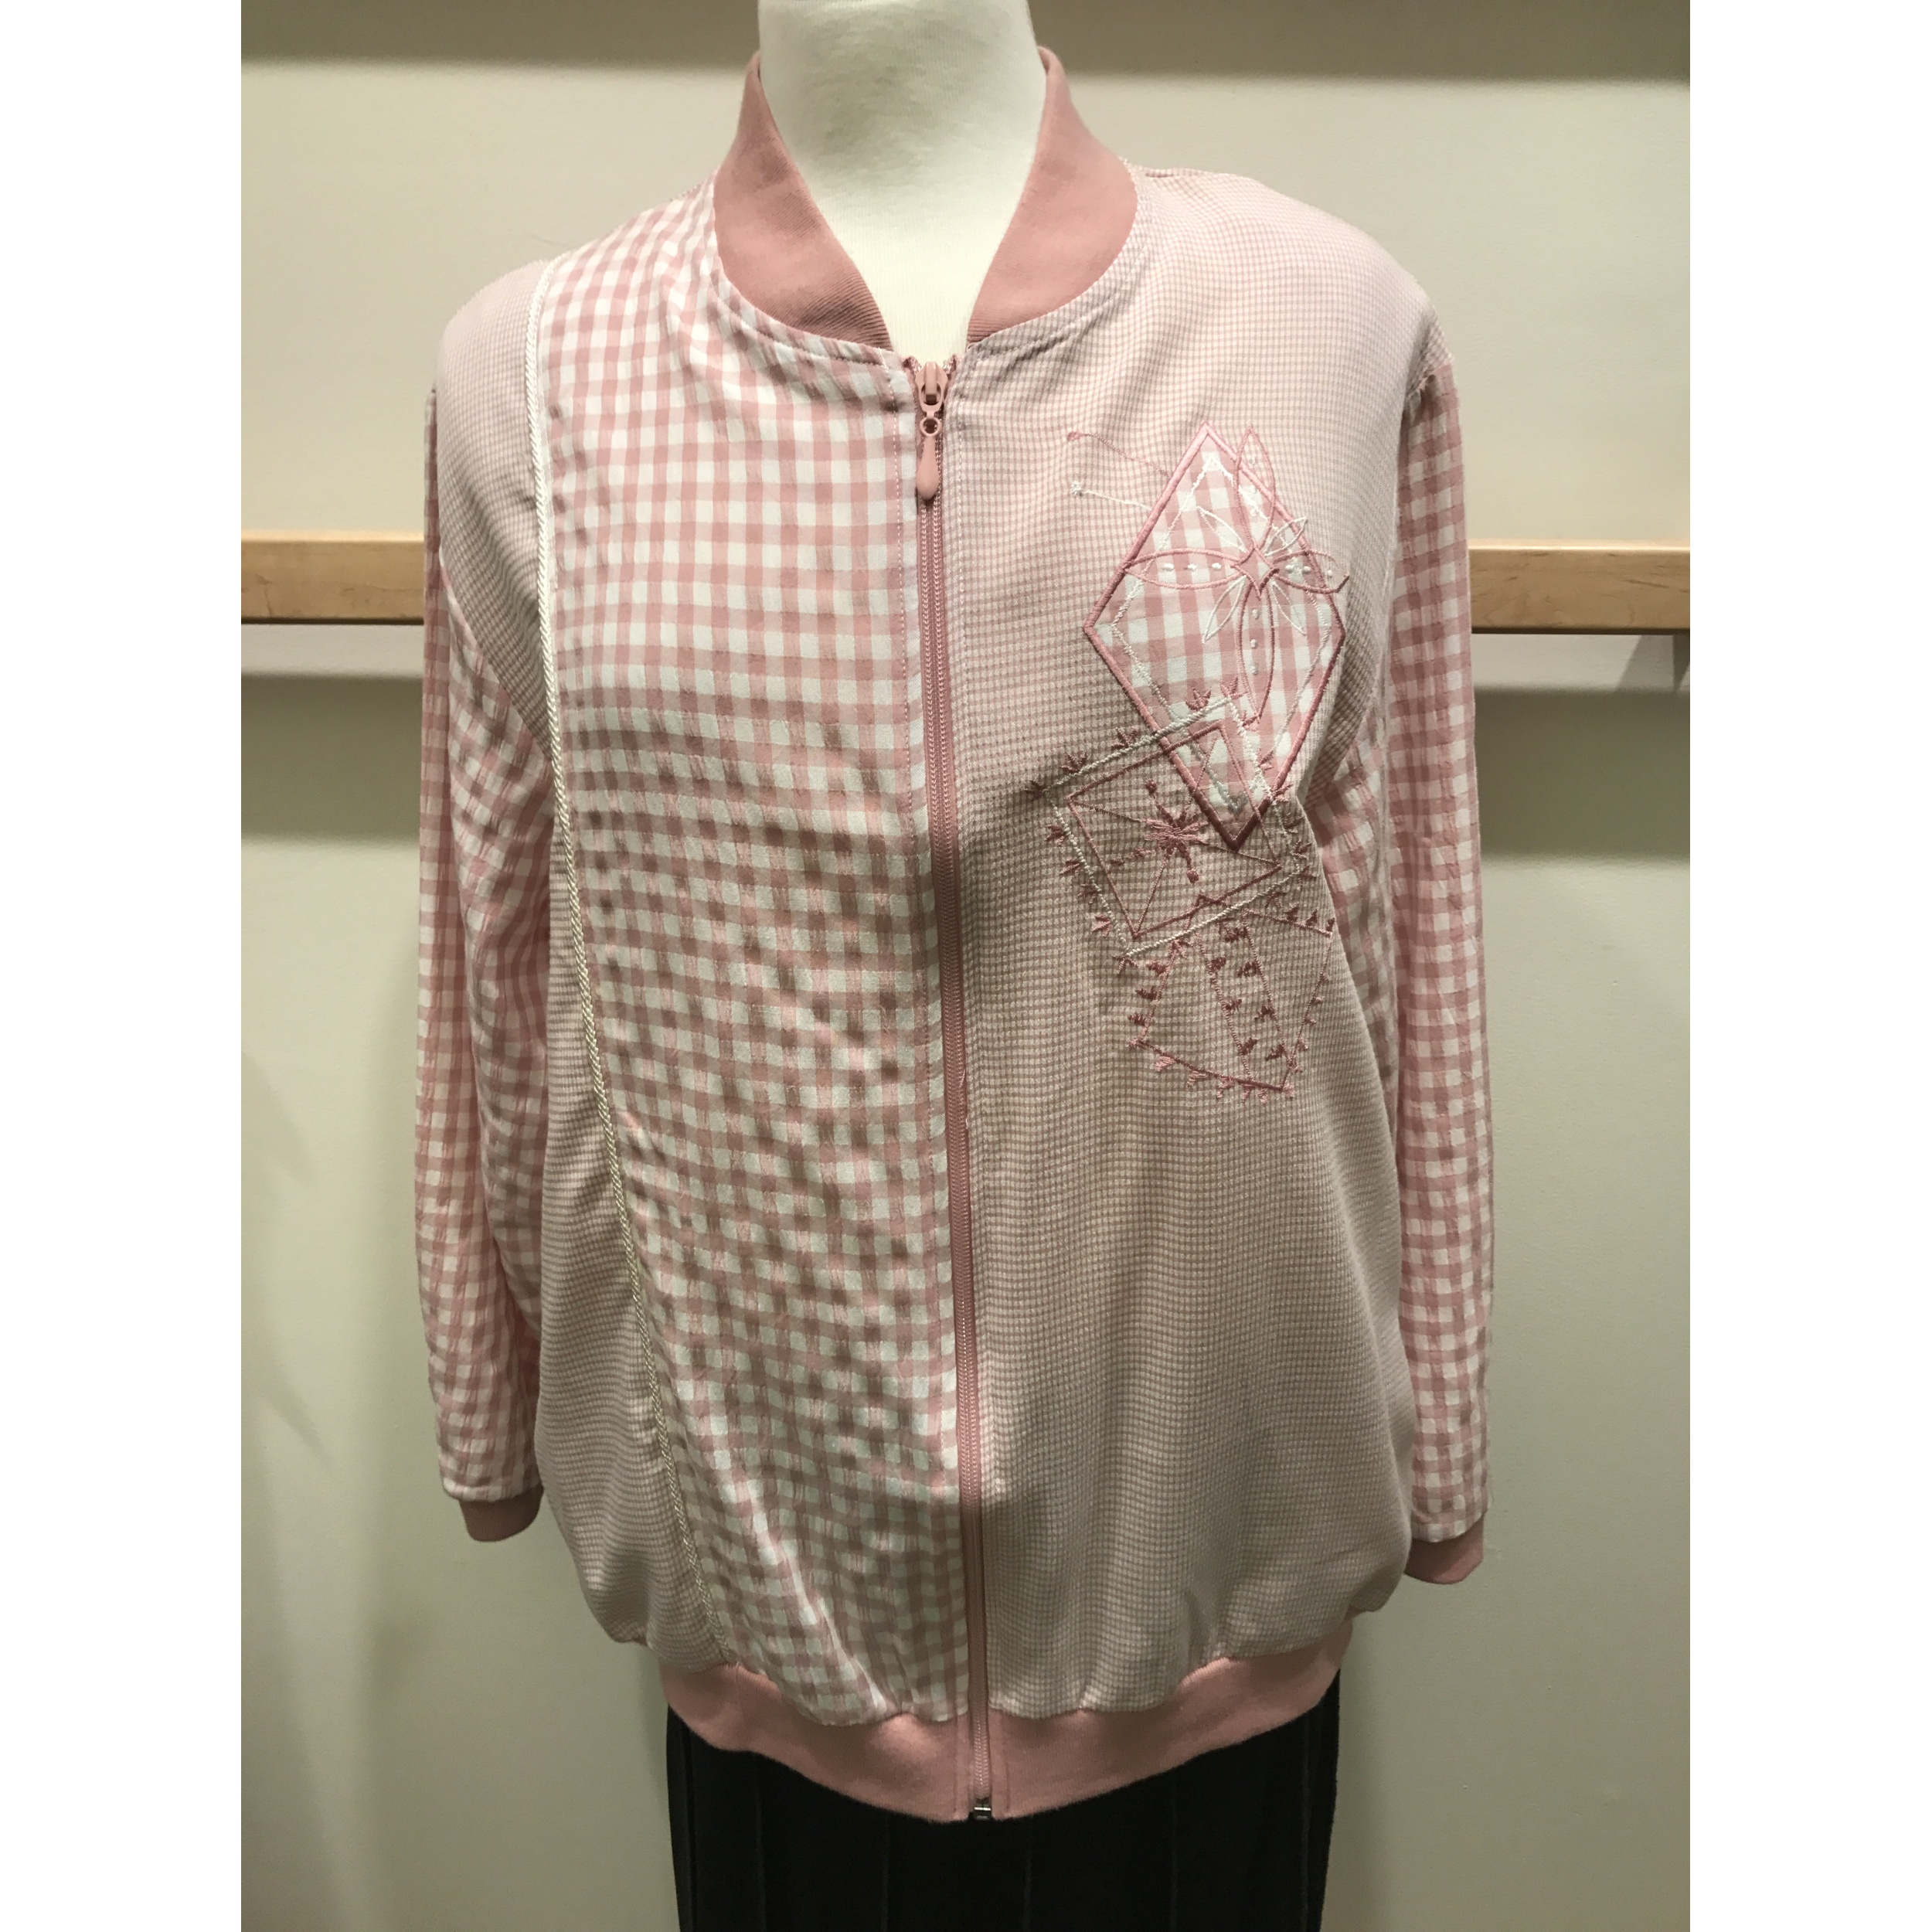 Pink And White Mini Gingham Check Jacket With Embroidery (Style# 1280S6)